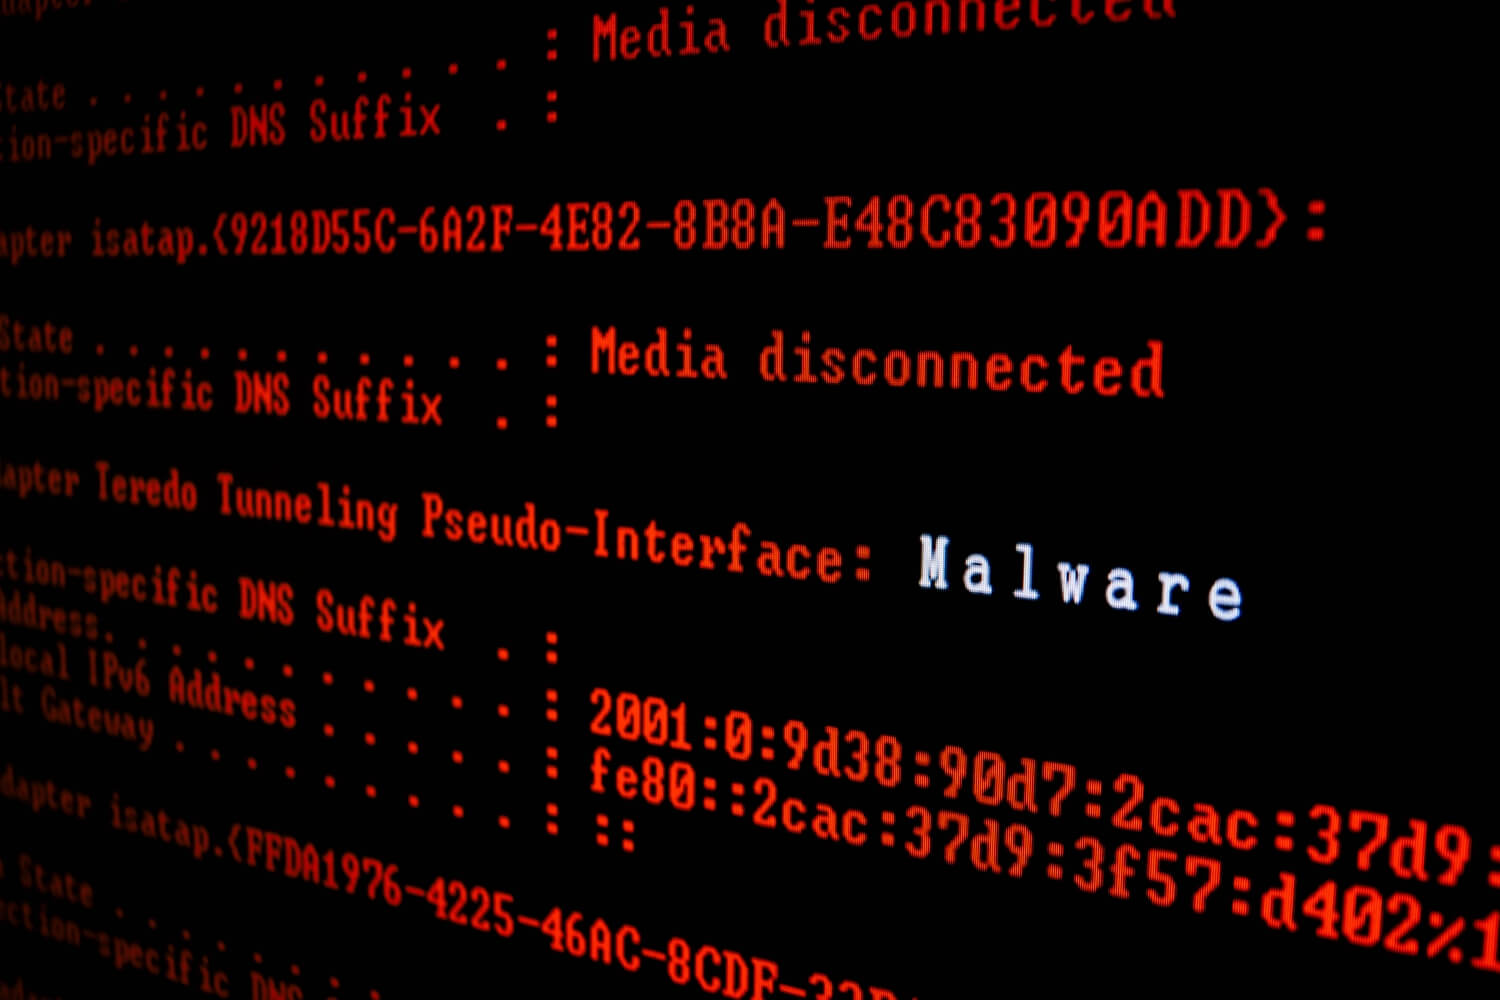 Microsoft and Intel are working on a project that converts malware into images for easier identification